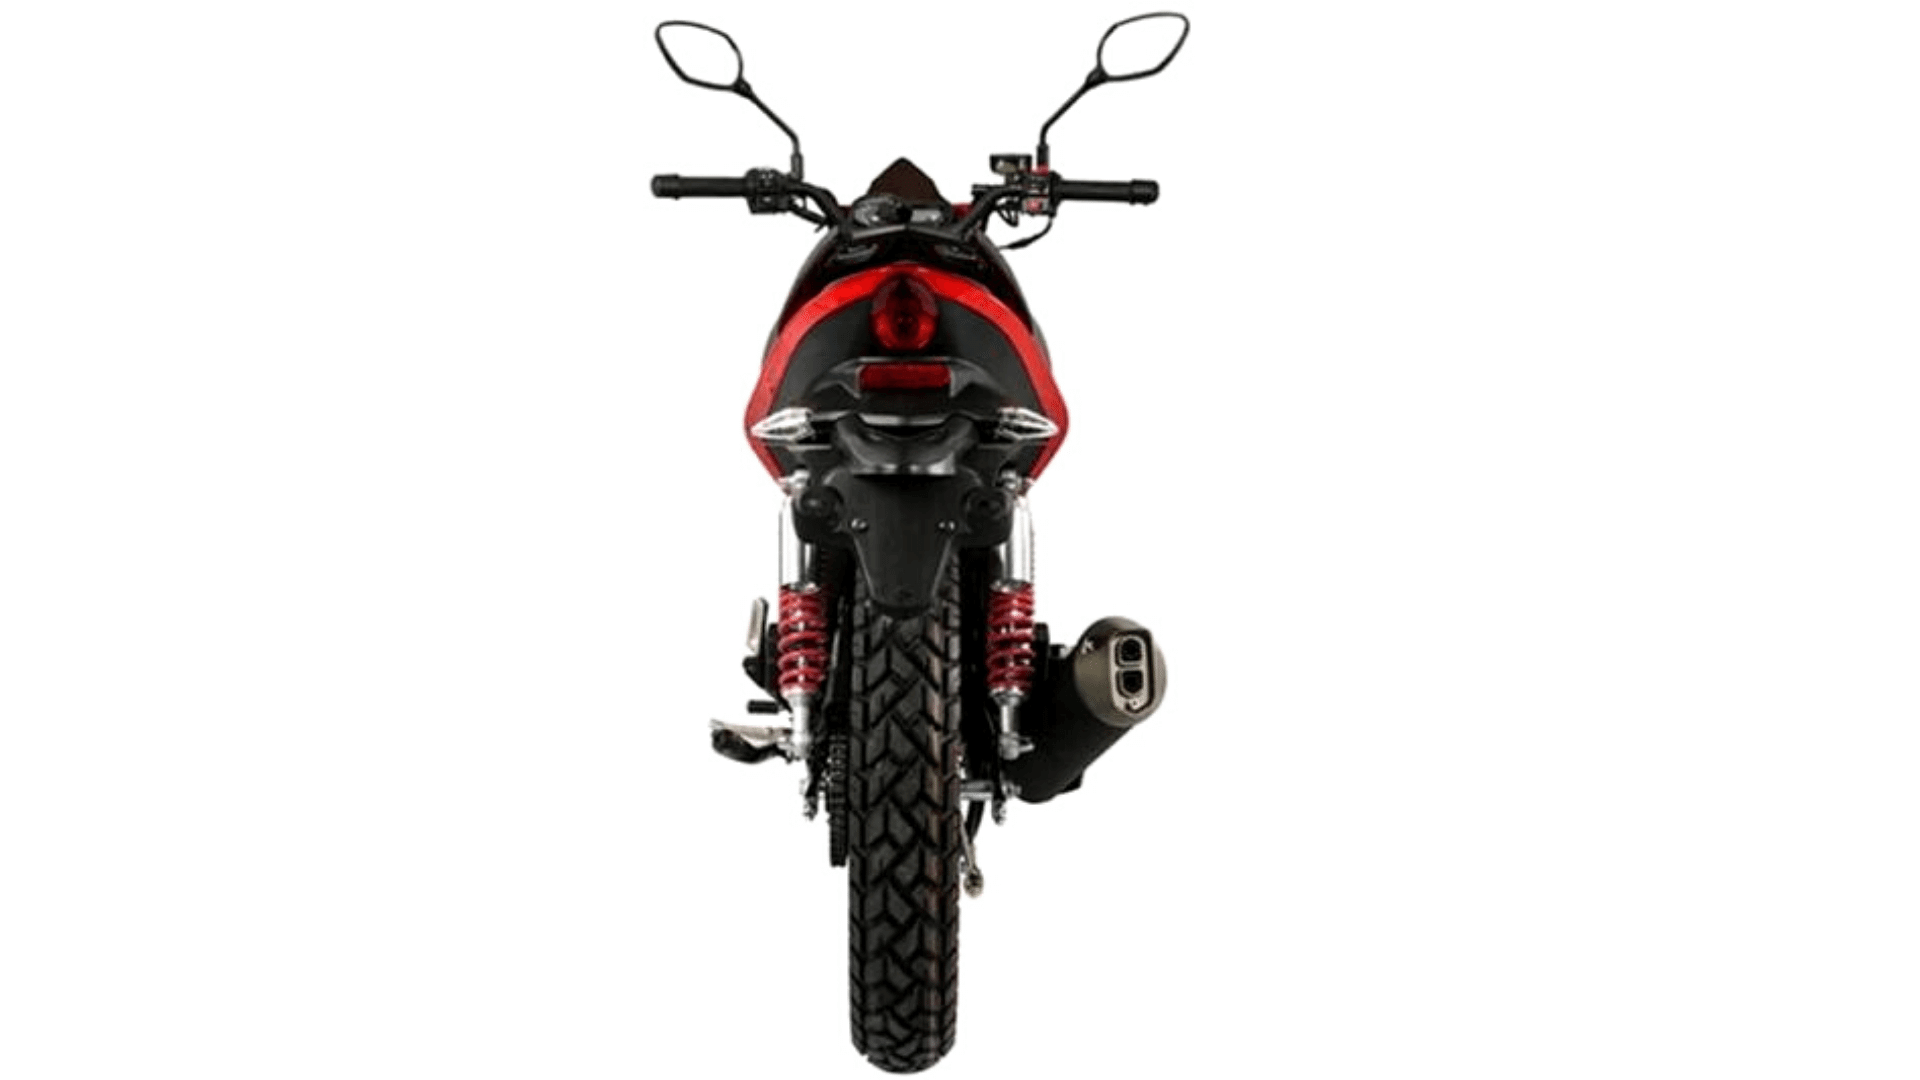 ZONTES 200 J (RED)